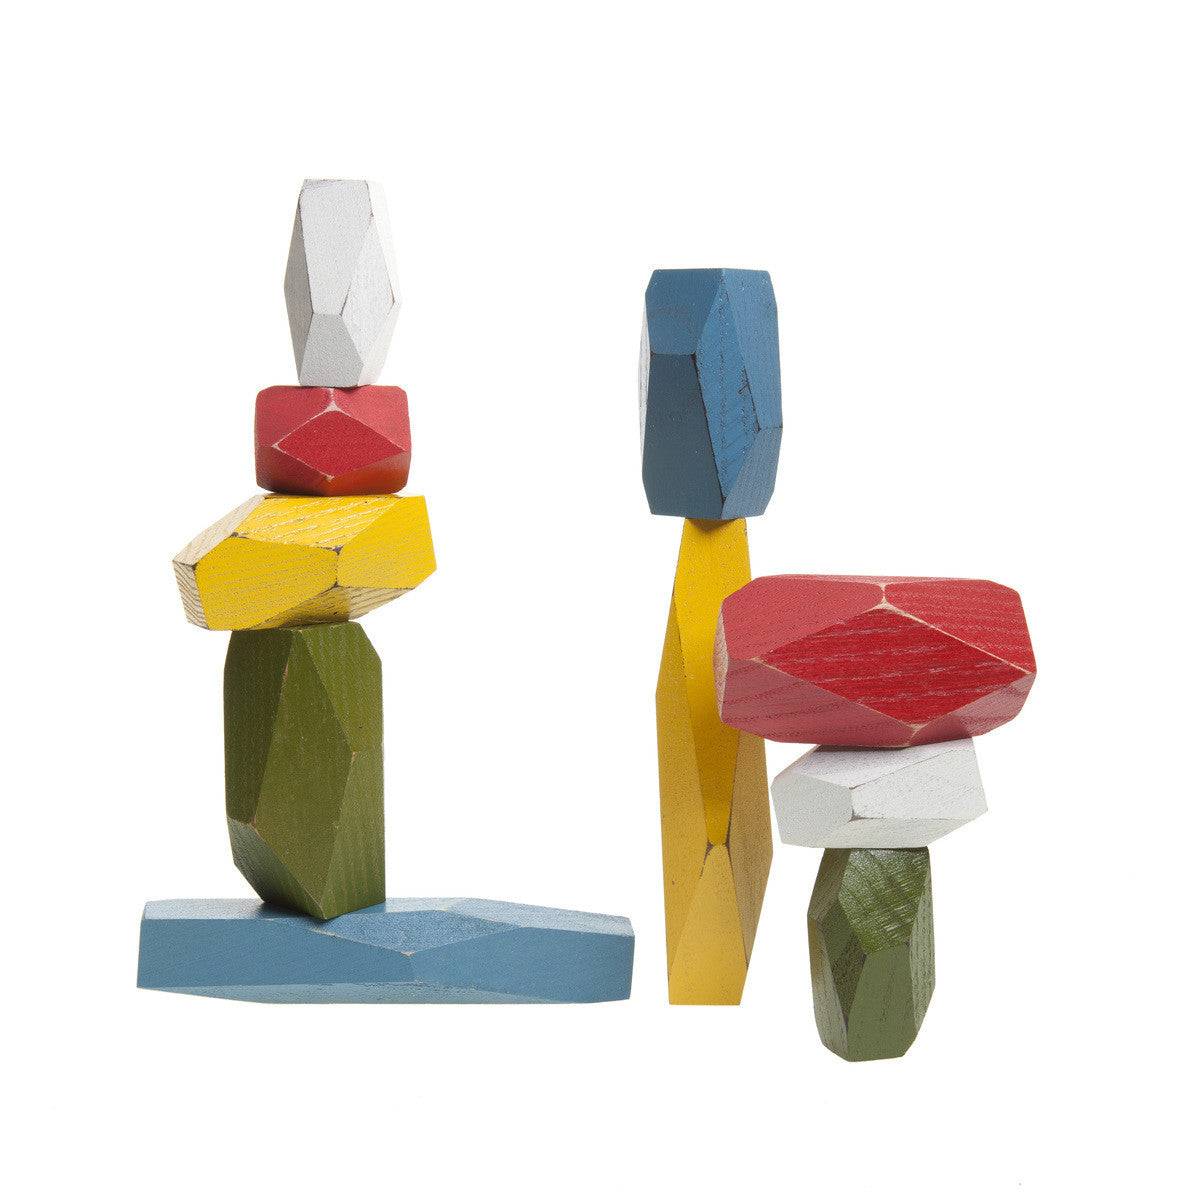 Areaware Balancing Blocks Toy